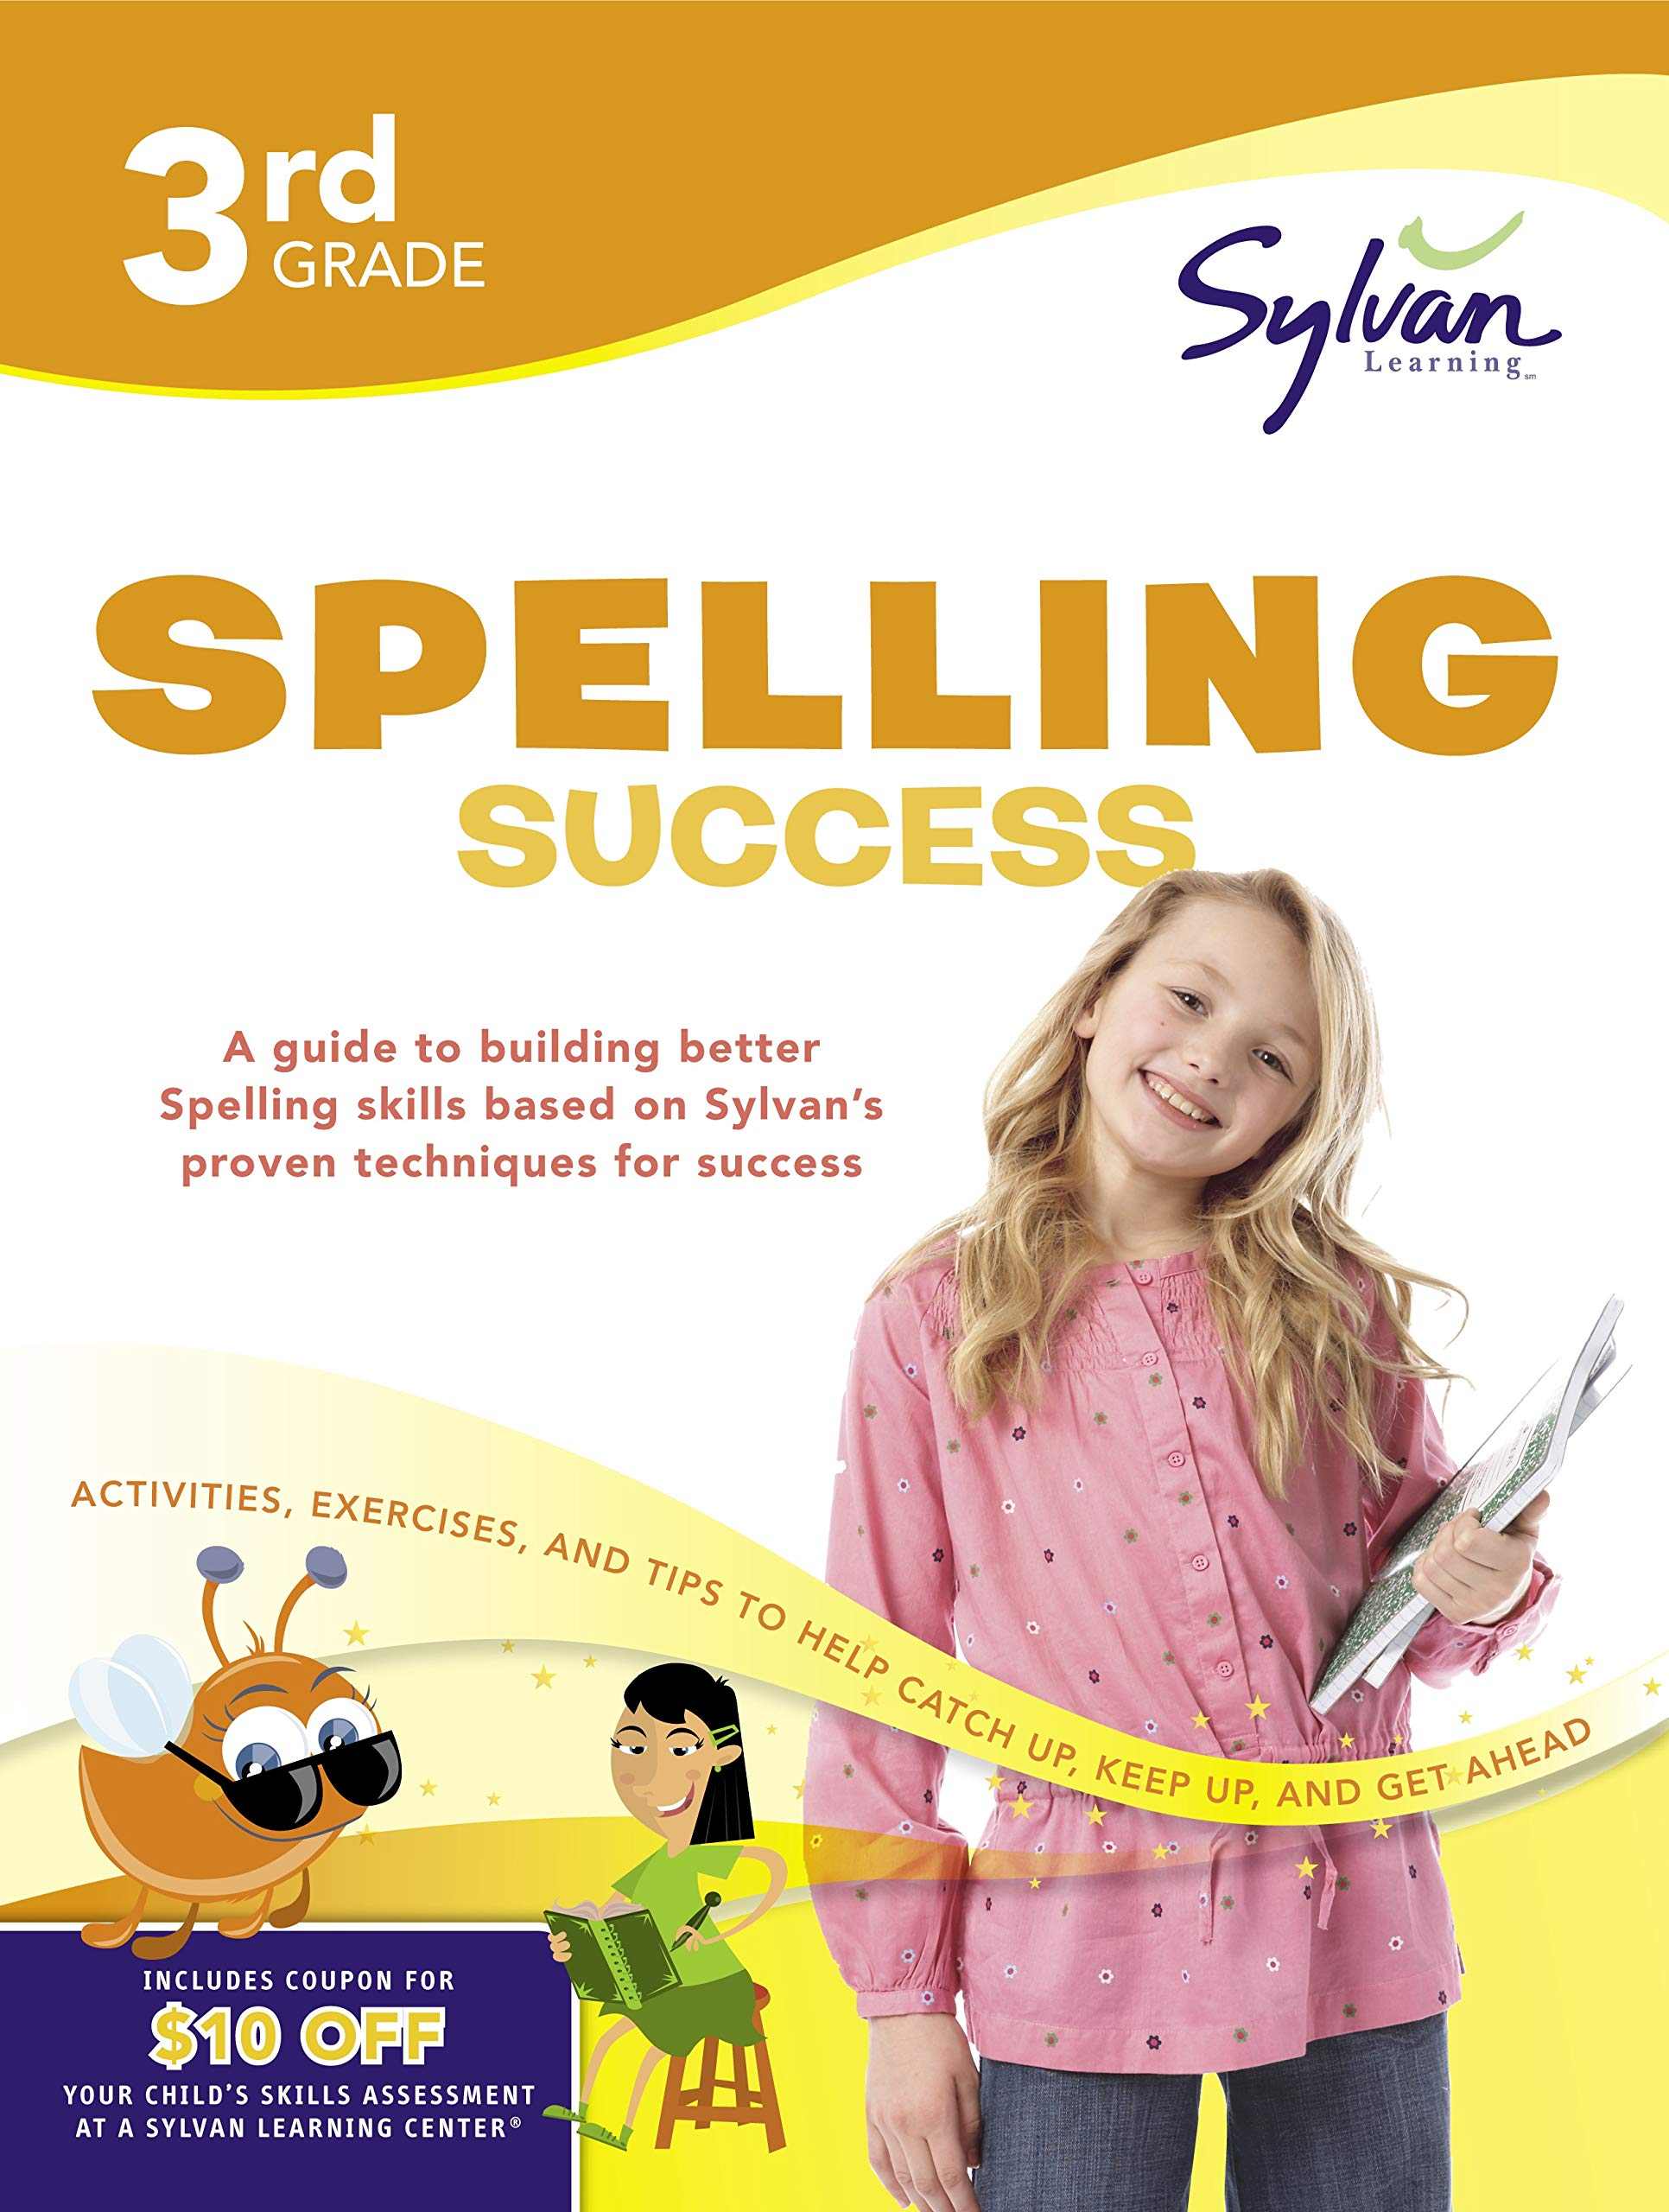 3rd Grade Spelling Success: Activities, Exercises, and Tips to Help Catch Up, Keep Up, and Get Ahead (Sylvan Language Arts Workbooks) by Sylvan Learning Publishing